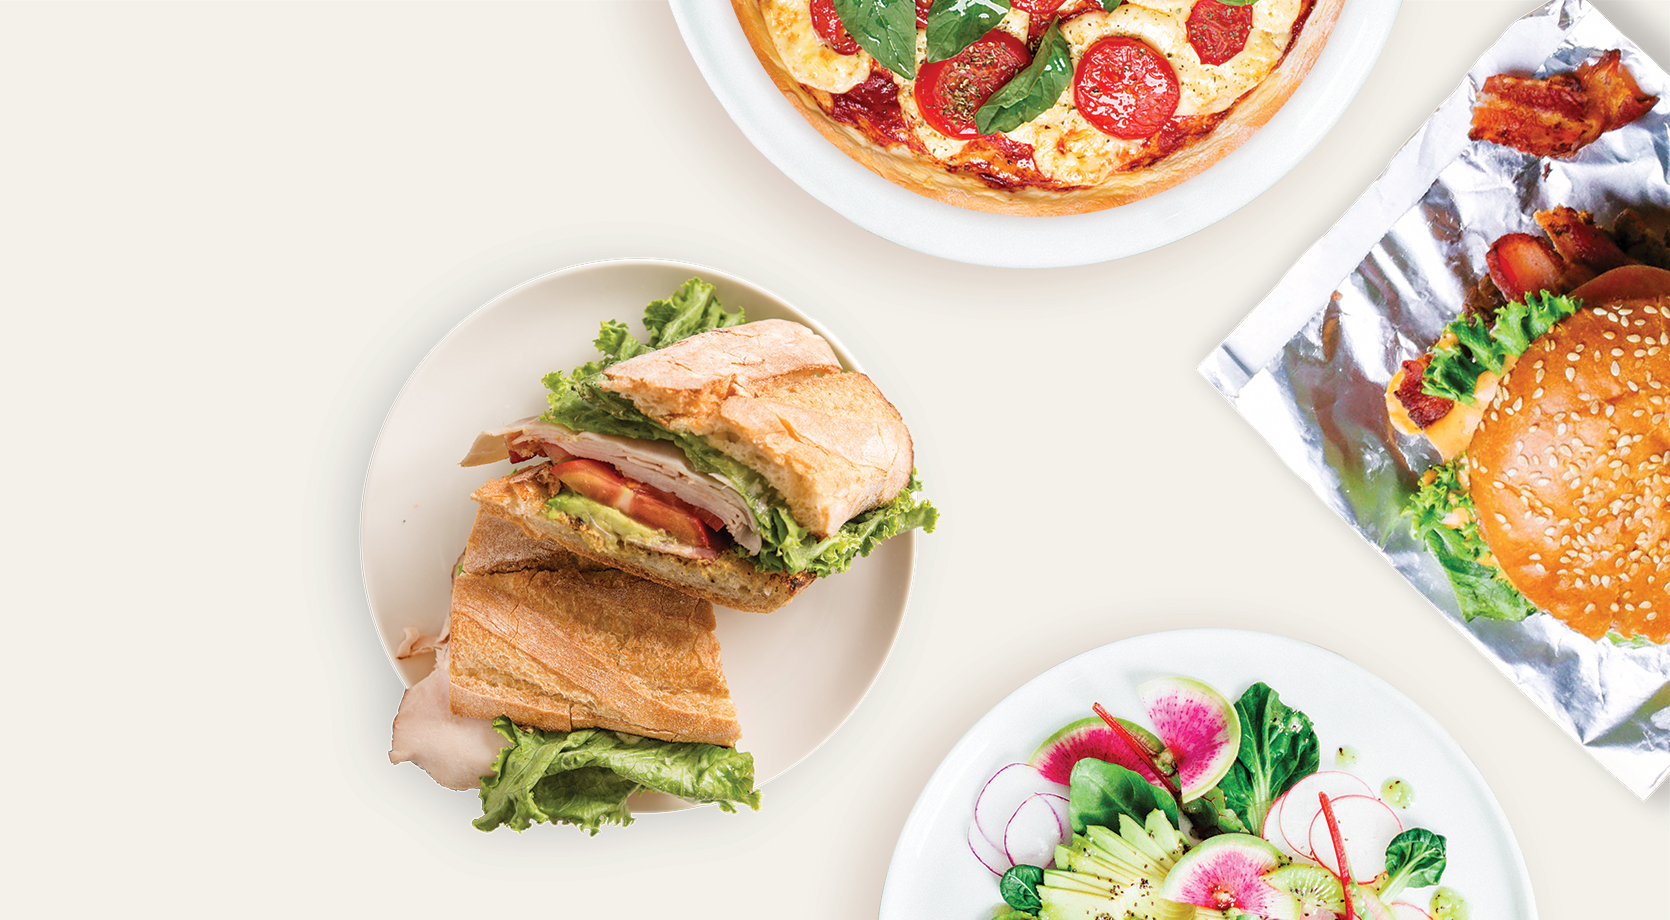 Restaurants Near Me - Order Food Delivery - DoorDash